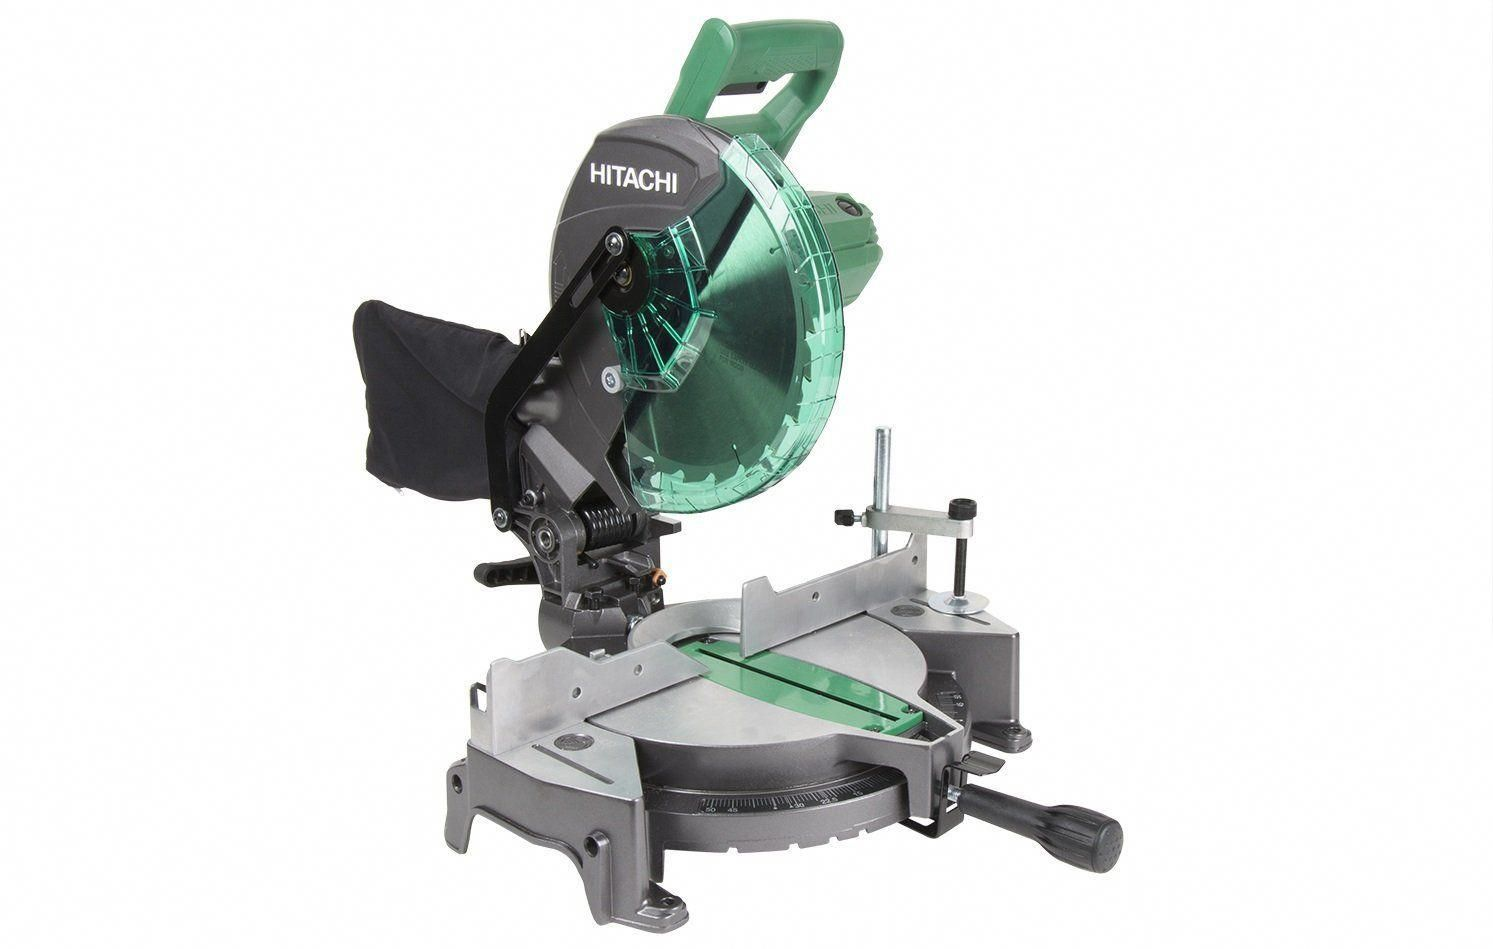 Afkortzaag Praxis Tool Time With Tamara How To Use A Miter Saw Provident Home